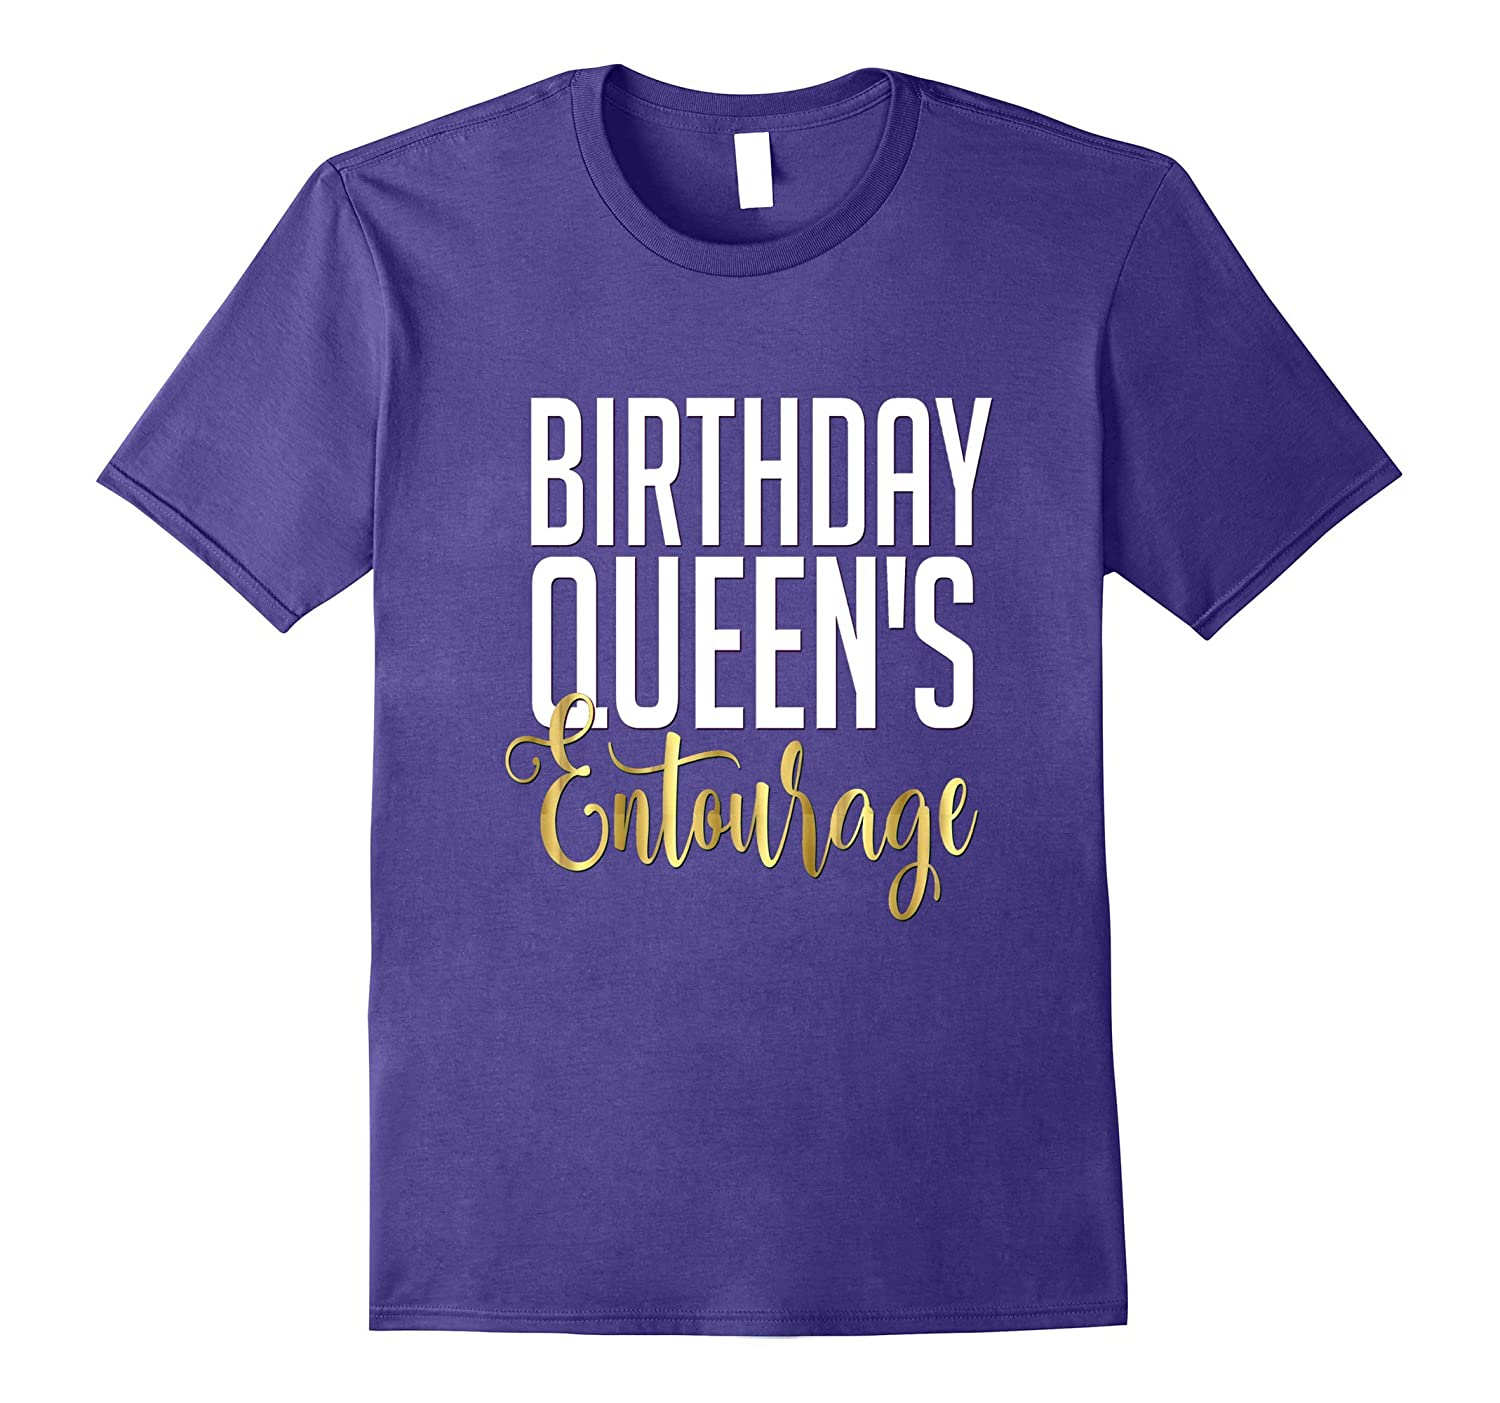 21st birthday shirt gift gold queens entourage crew squad for Bucket squad gold shirt